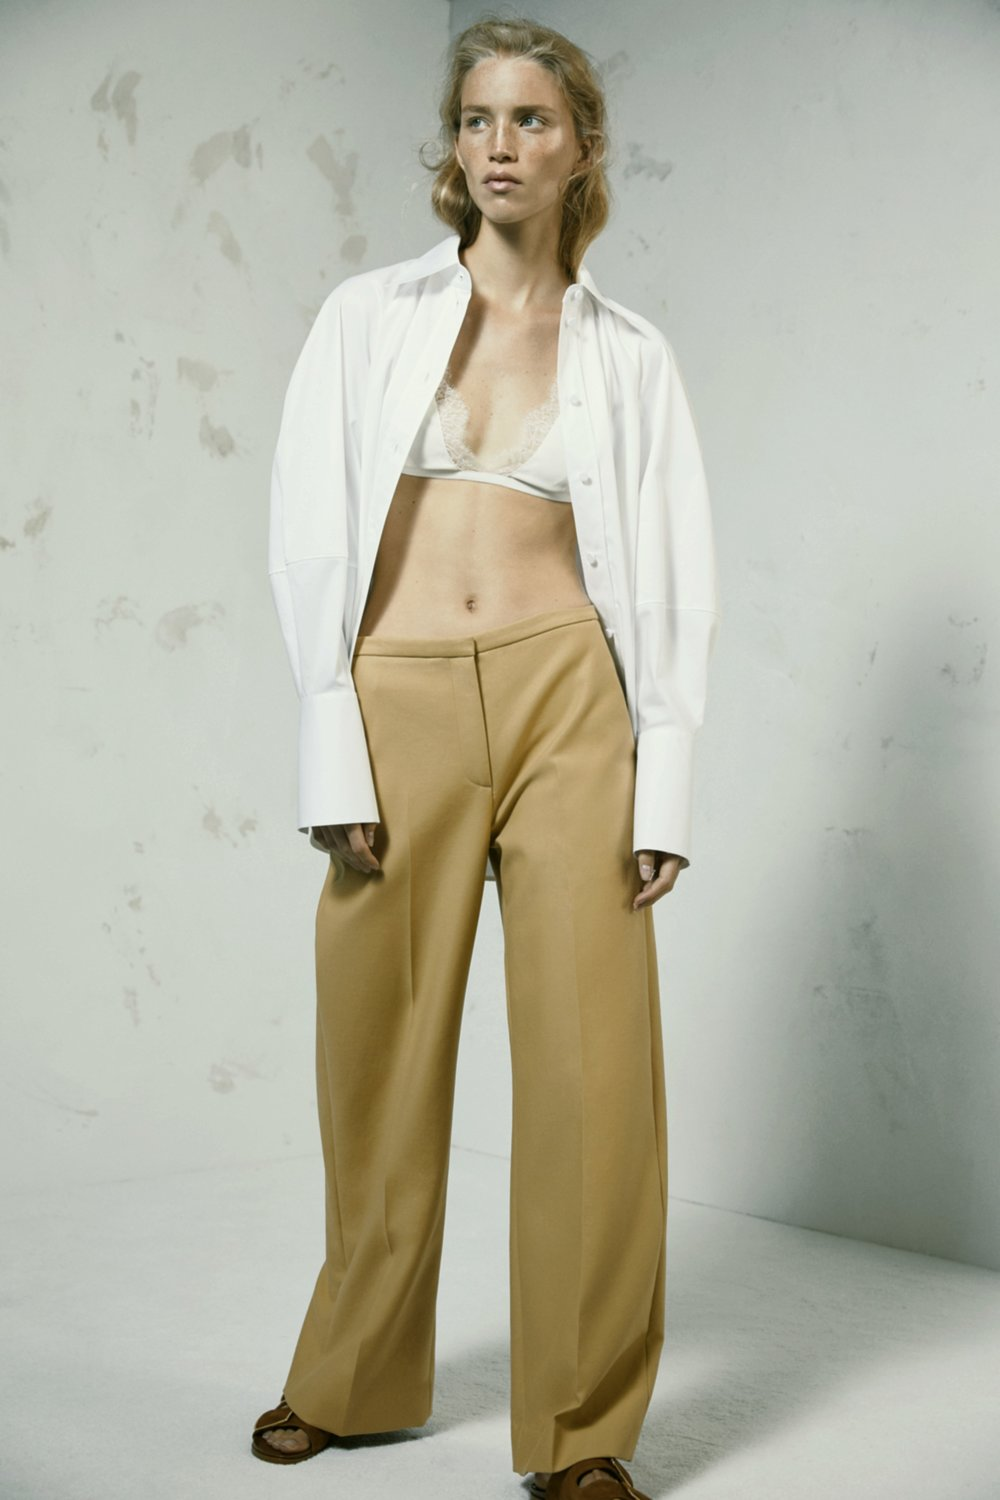 00012-khaite-collection-spring-2019-ready-to-wear.jpg